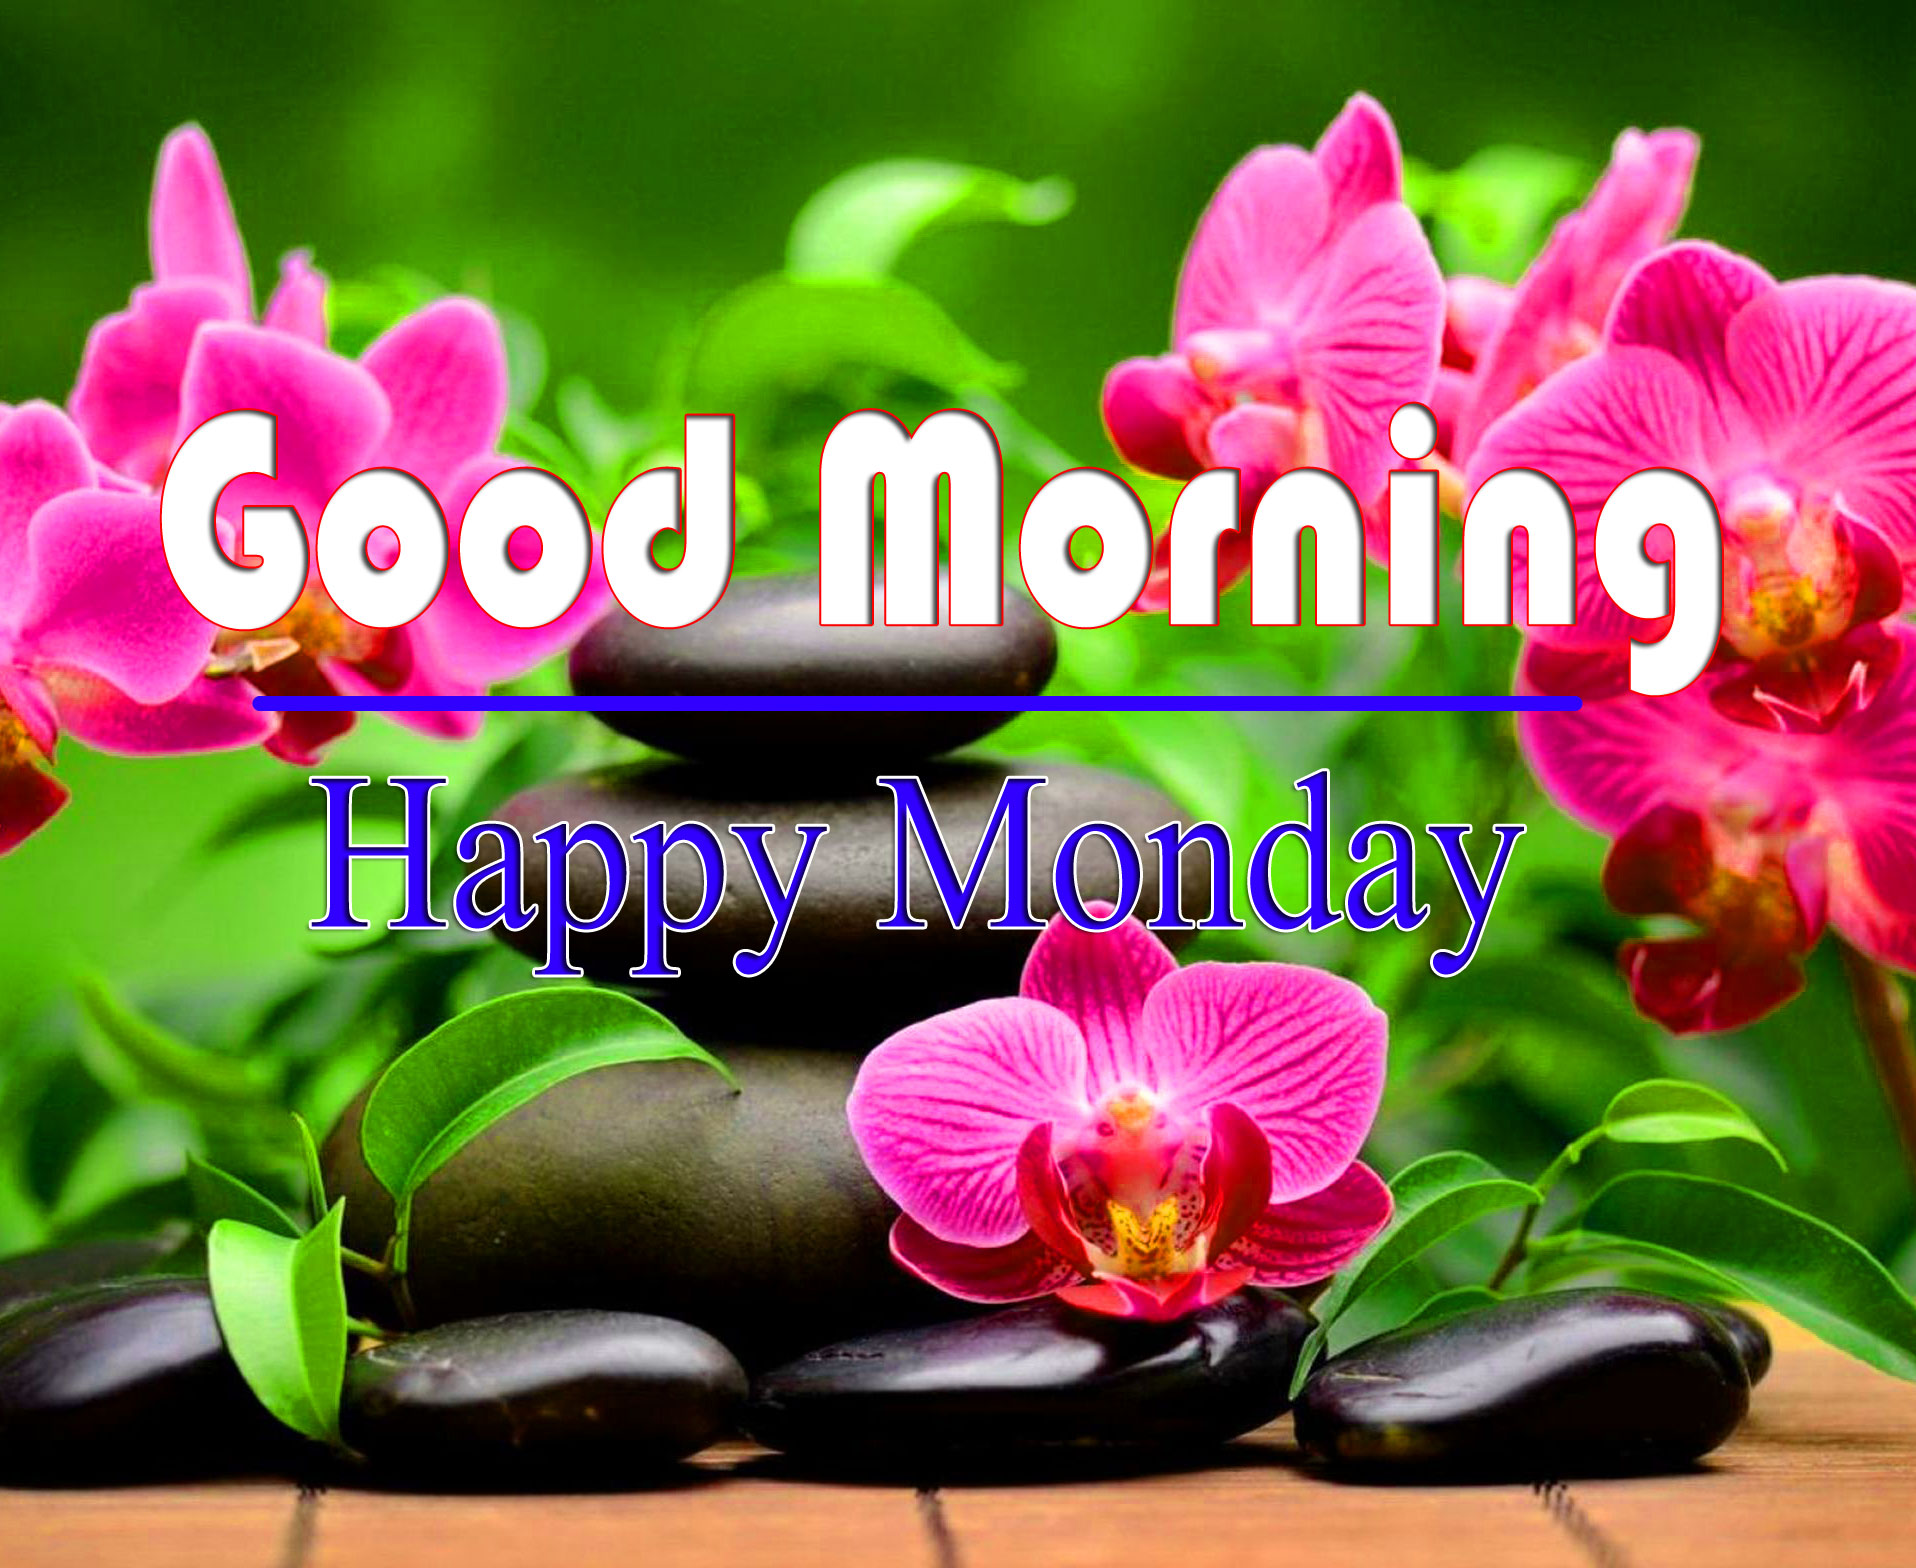 Best Quality Monday Good Morning Images 2021 1